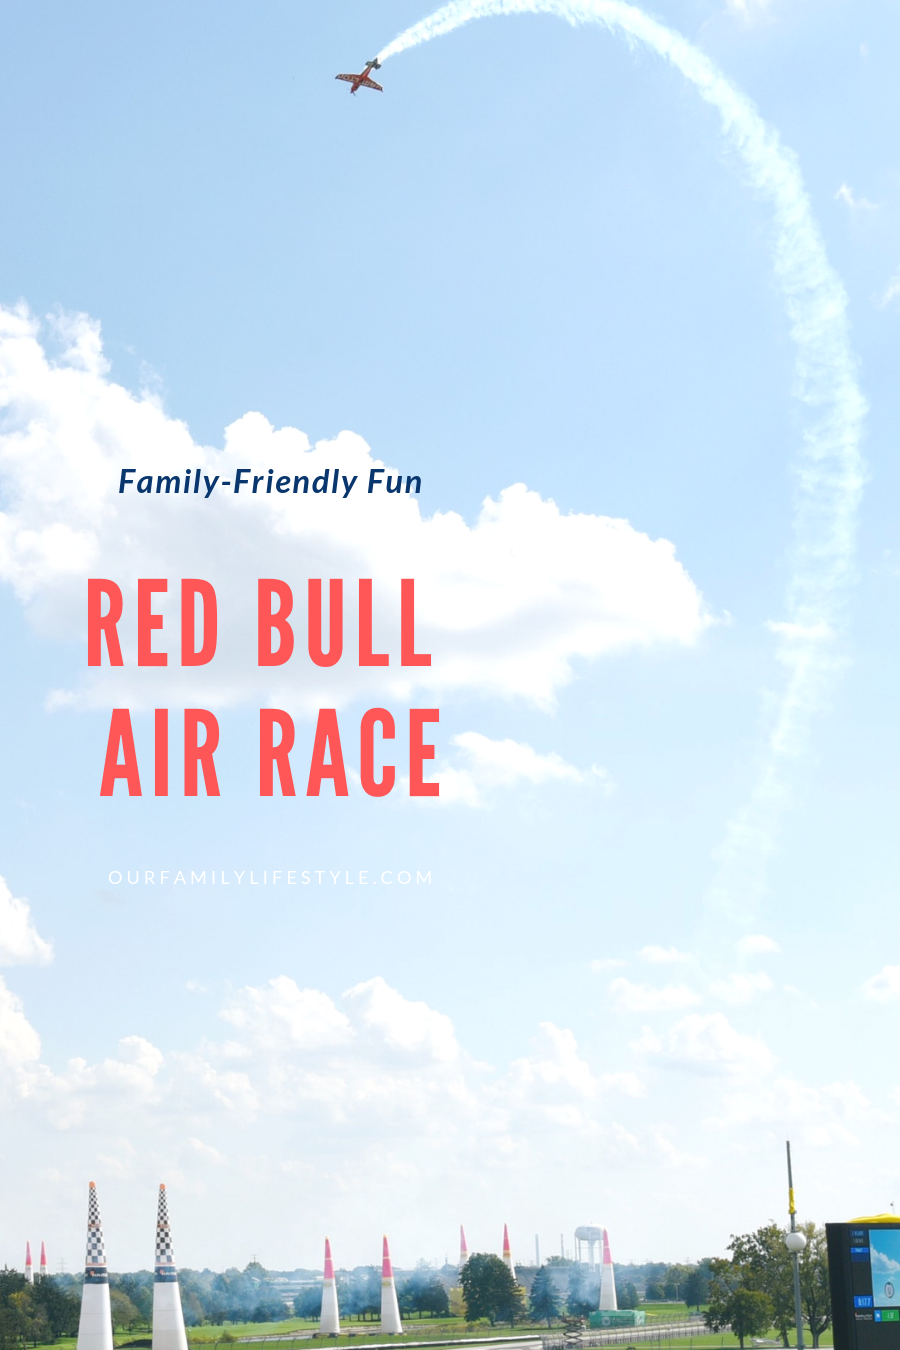 Family-Friendly Fun at Red Bull Air Race